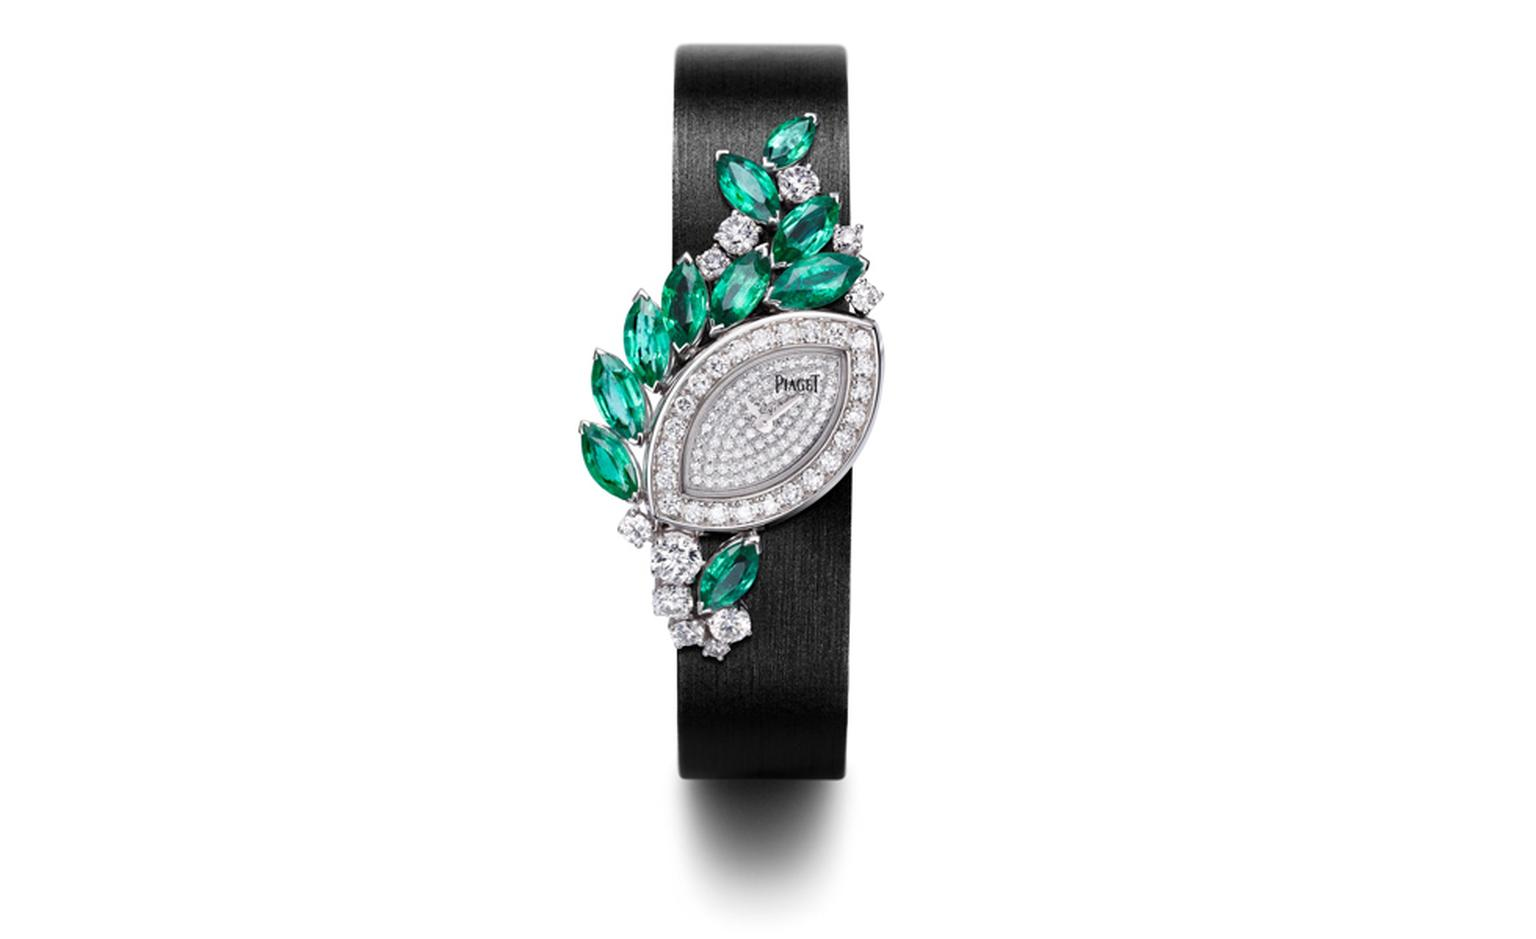 PIAGET, Limelight Garden Party, white gold case set with diamonds and emeralds, diamond paved dial set with diamonds. Piaget quartz movement, white gold folding clasp set with diamonds and black satin trap. POA